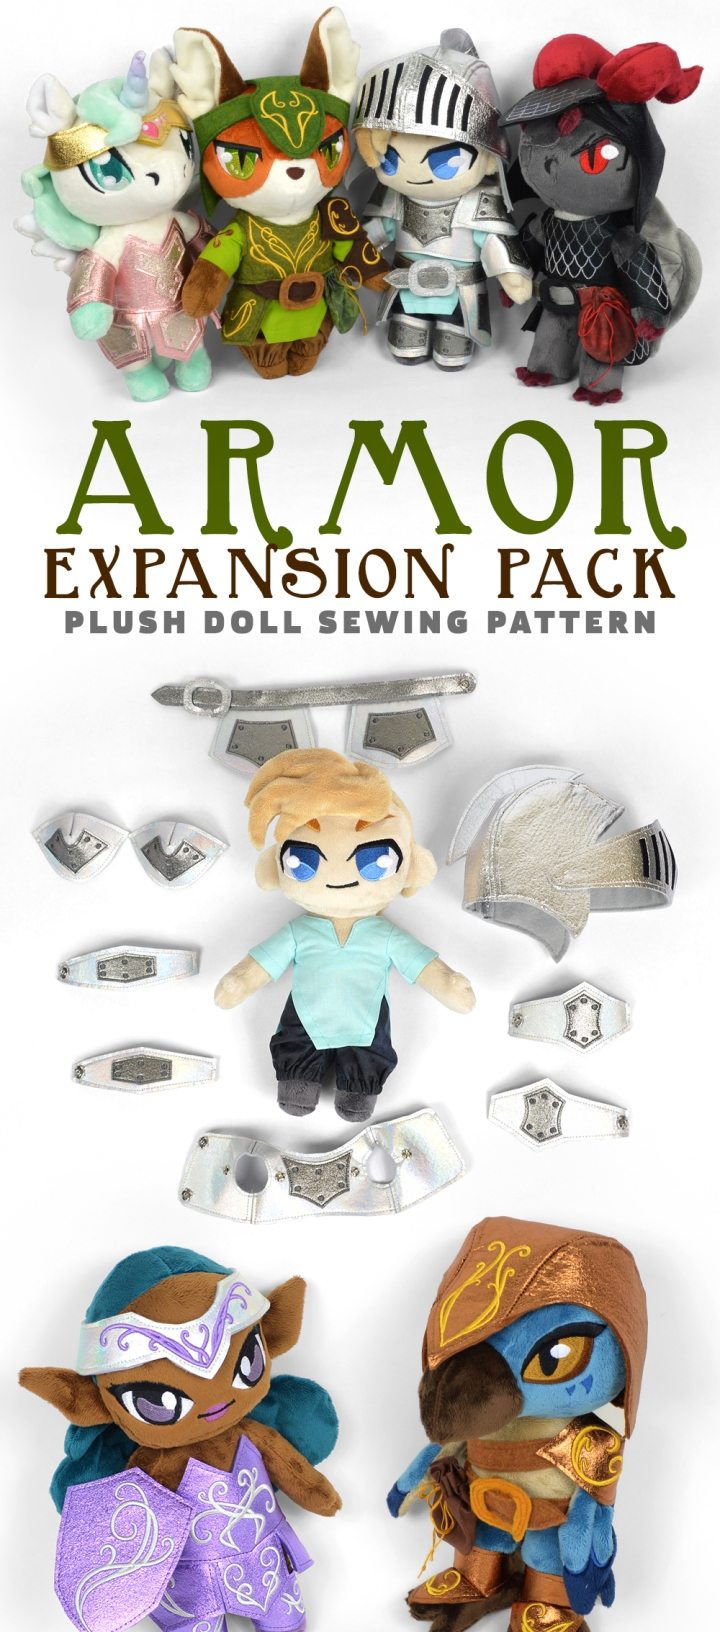 Armor Expansion Pack Sewing Pattern